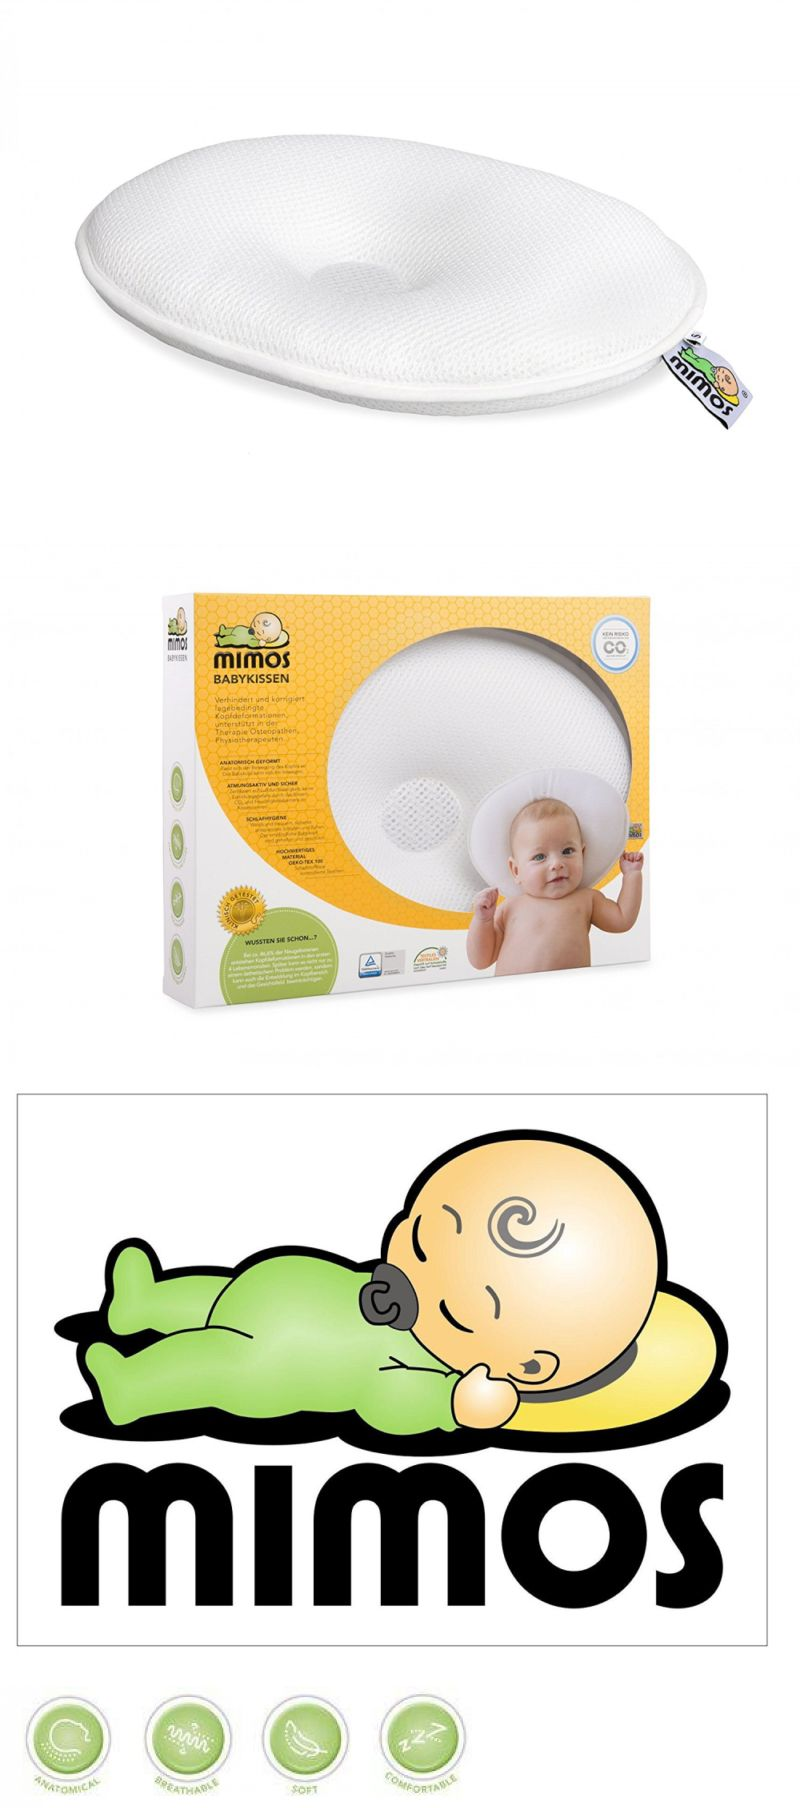 Mimos Baby Pillow Xxl Air Flow Safety Tuv Certification Bed Pillows 180907